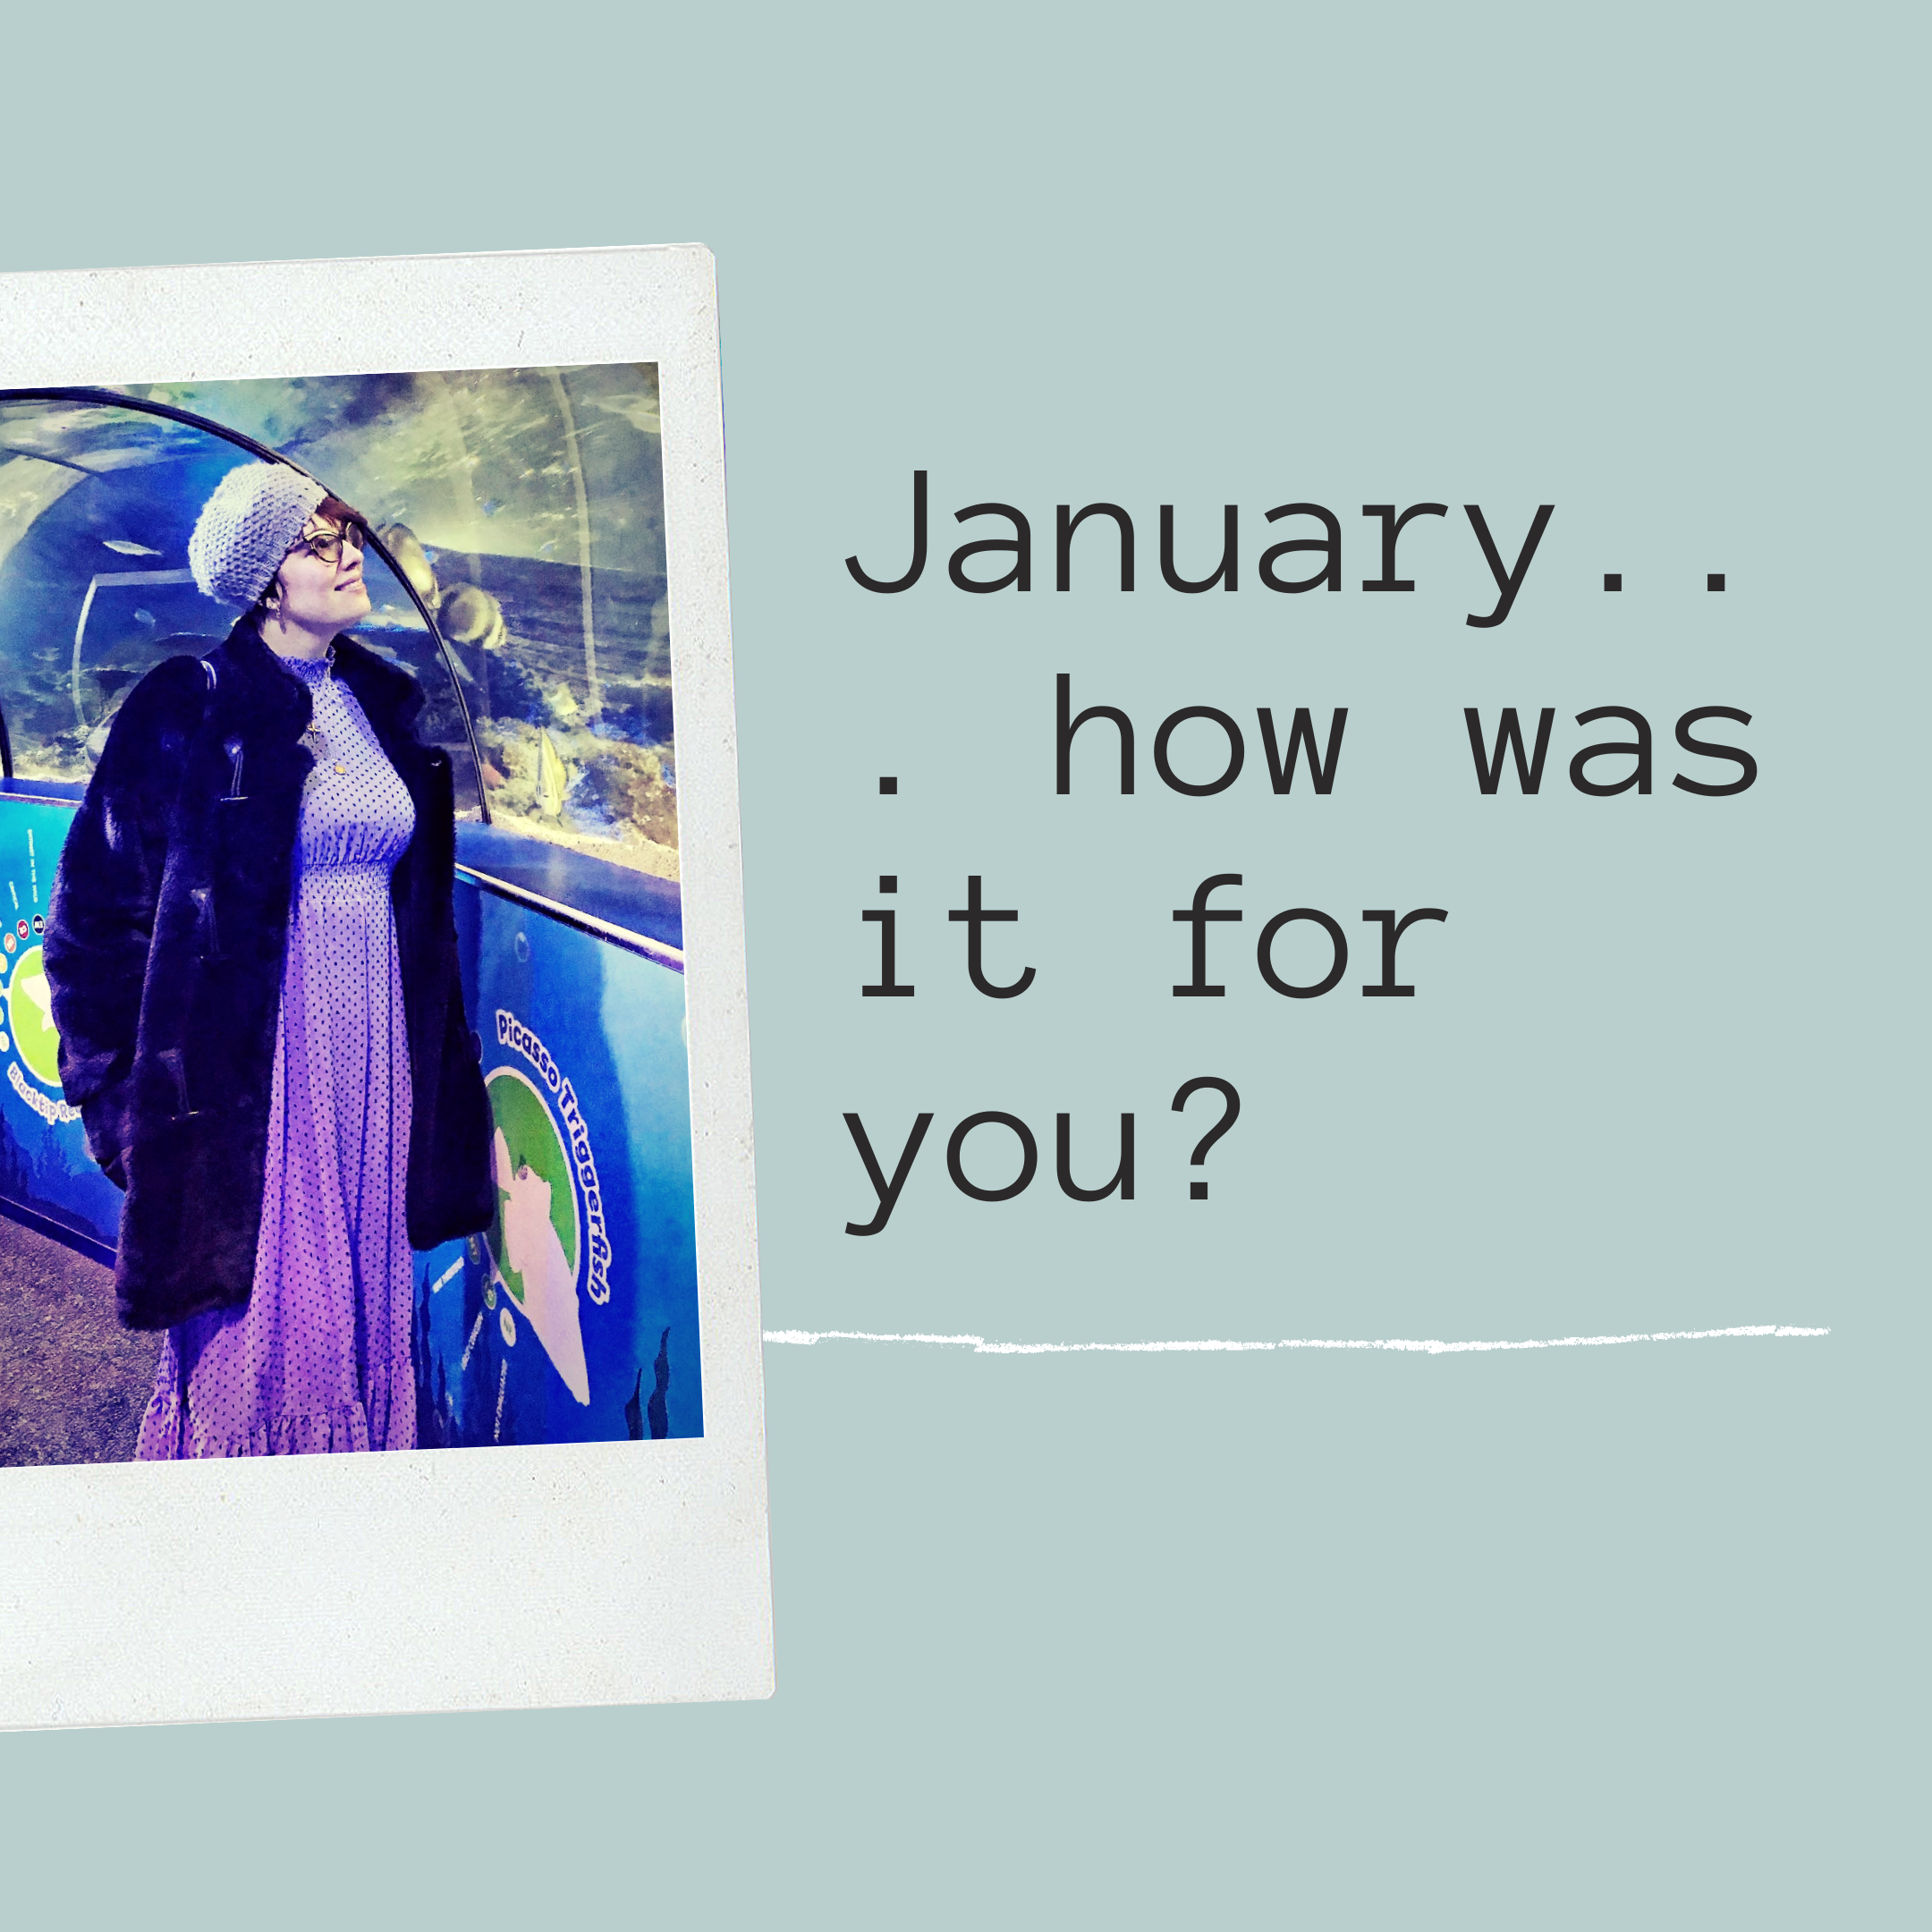 January – how was it for you?